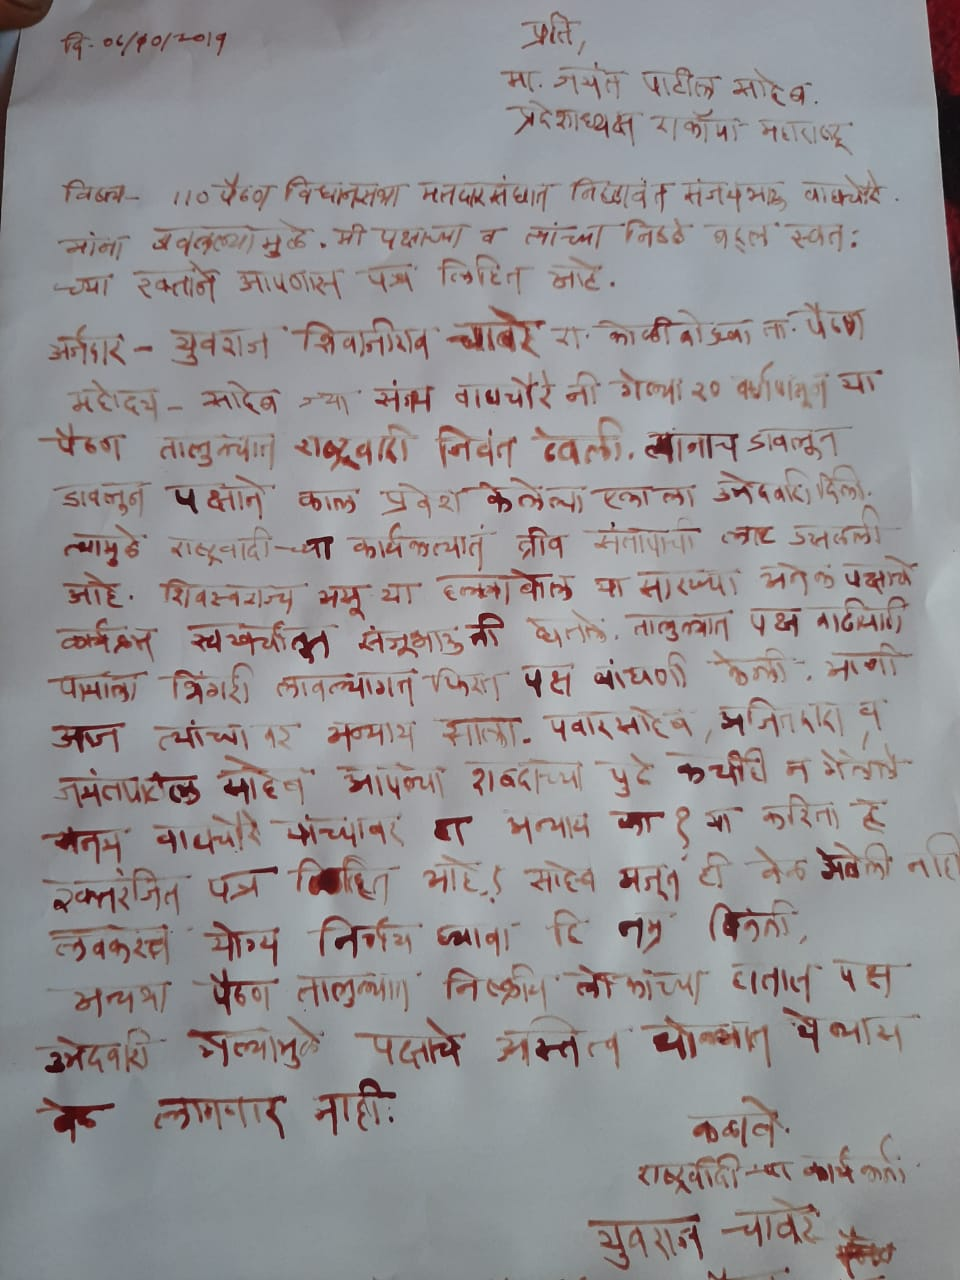 NCP activist wrote letter from blood